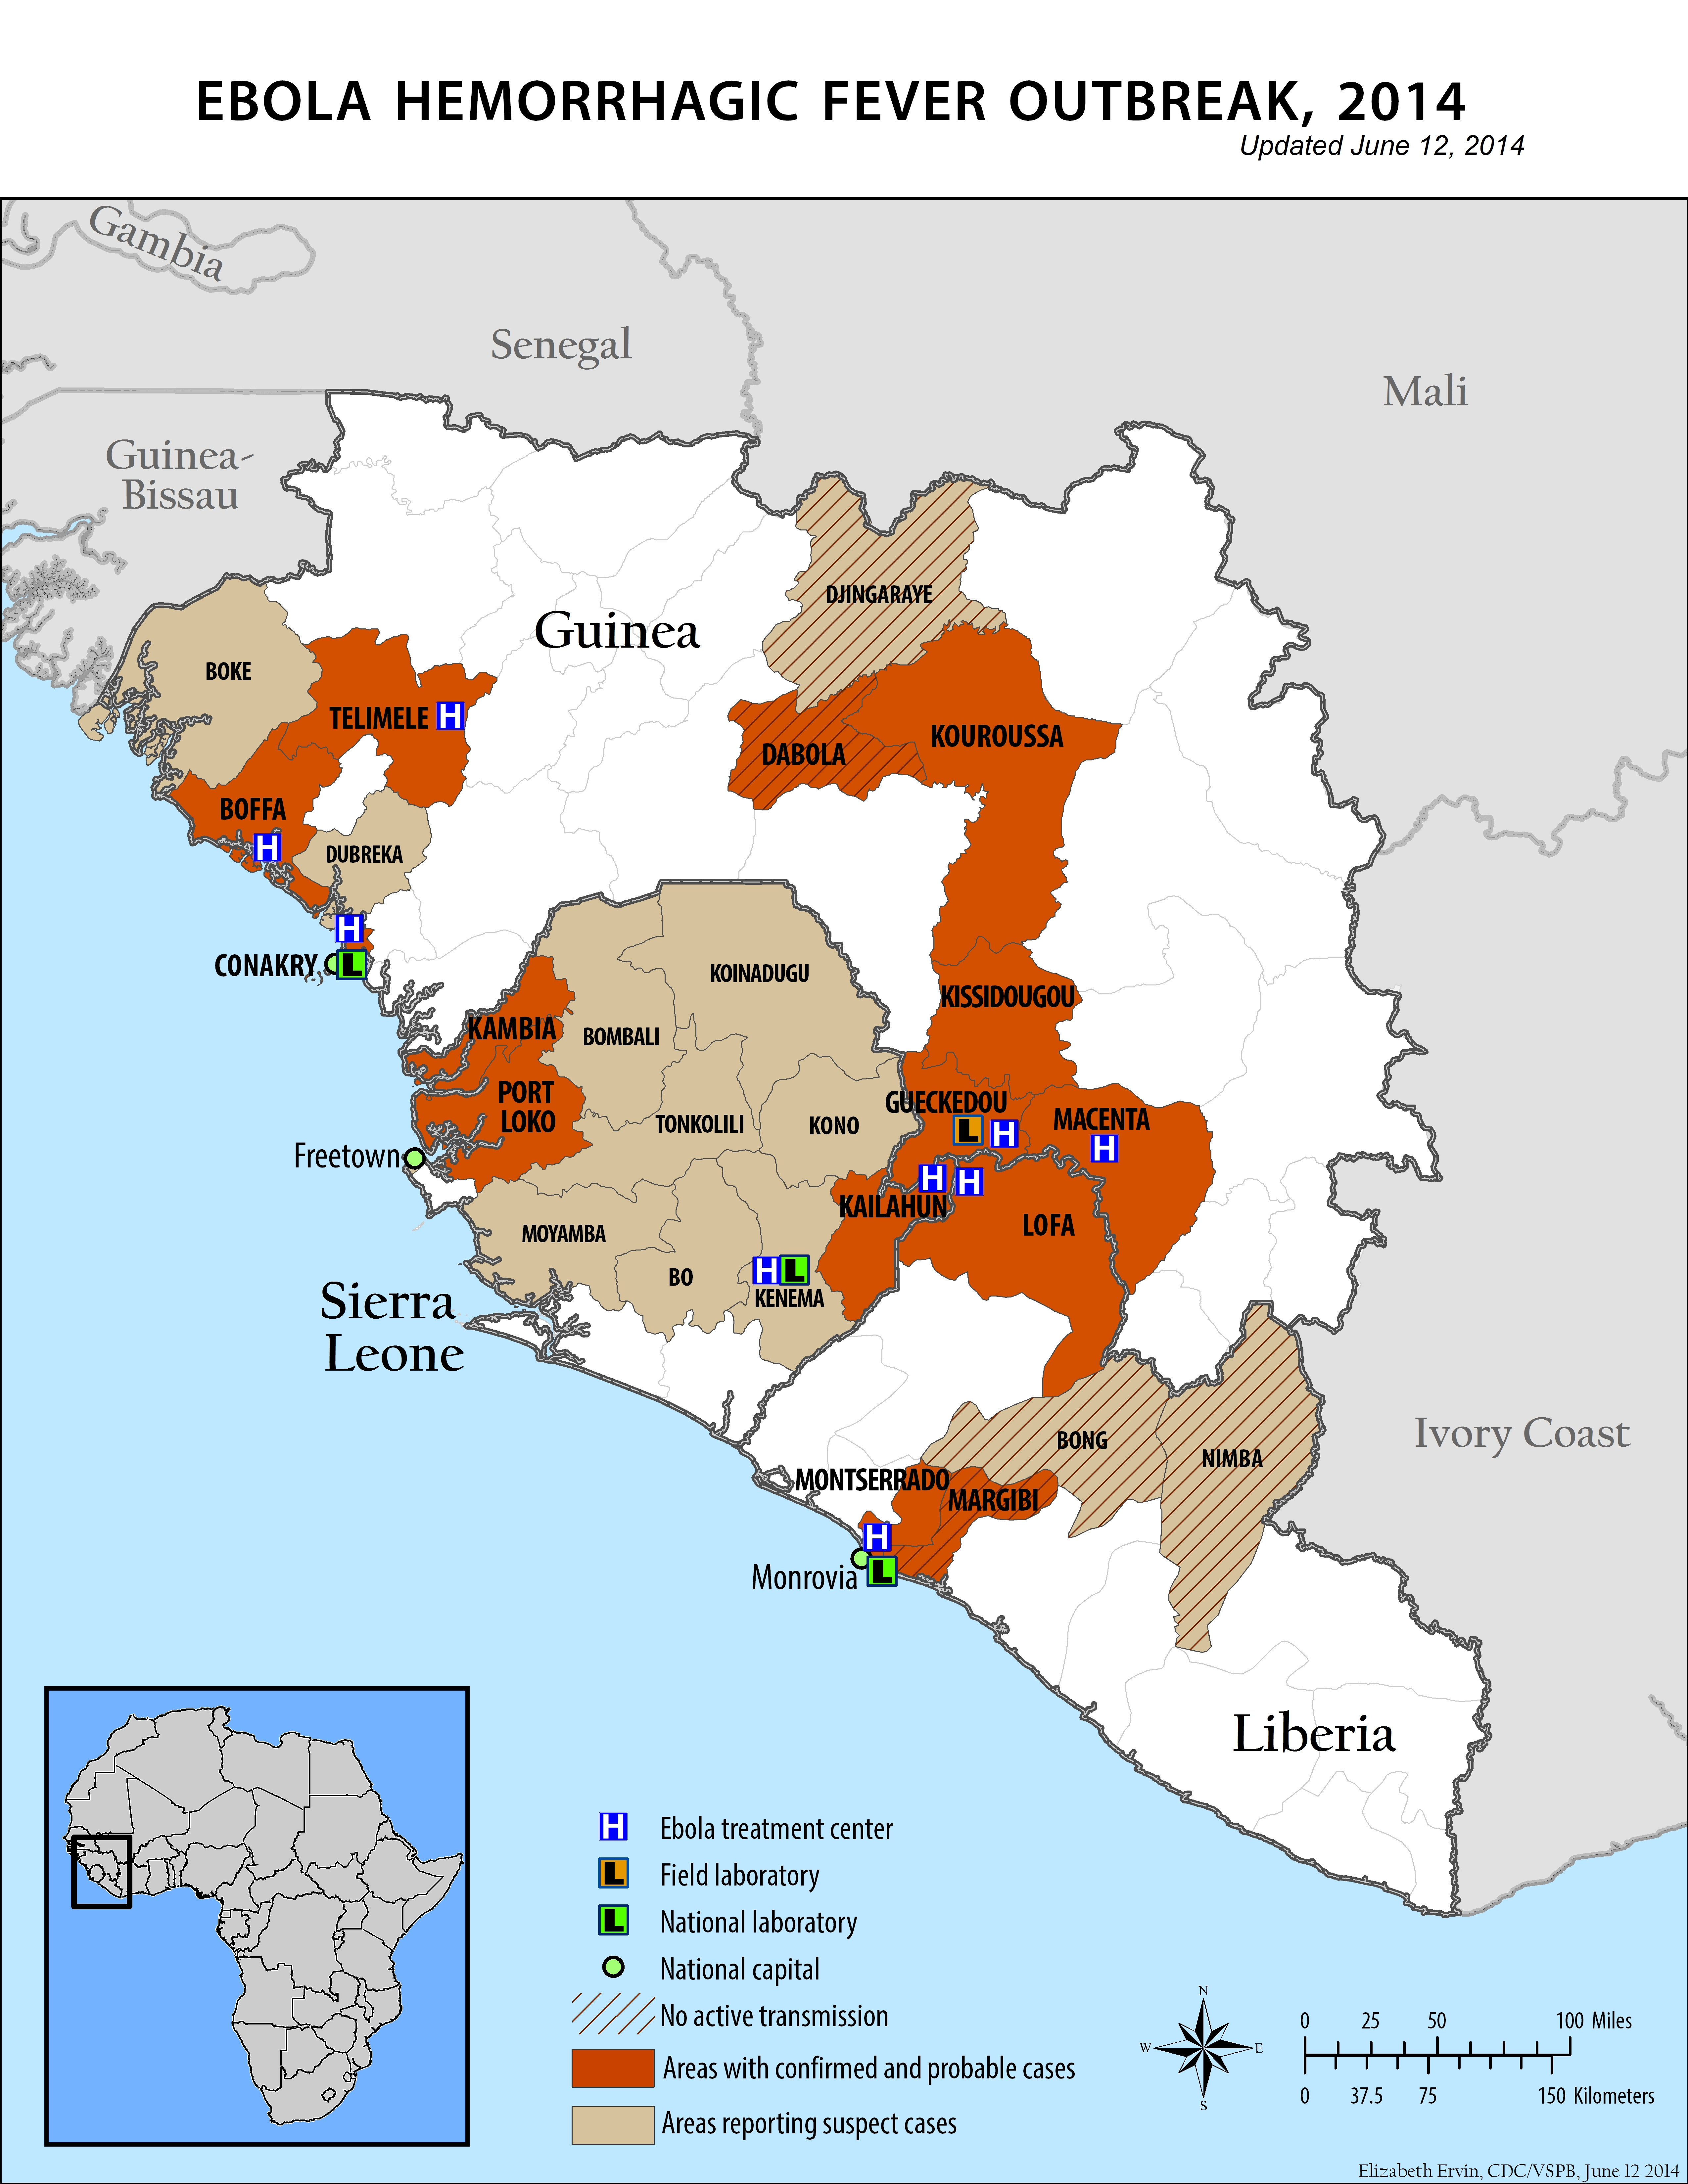 Ebola hemorrhagic fever outbreak, 2014 : updated June 12, 2014